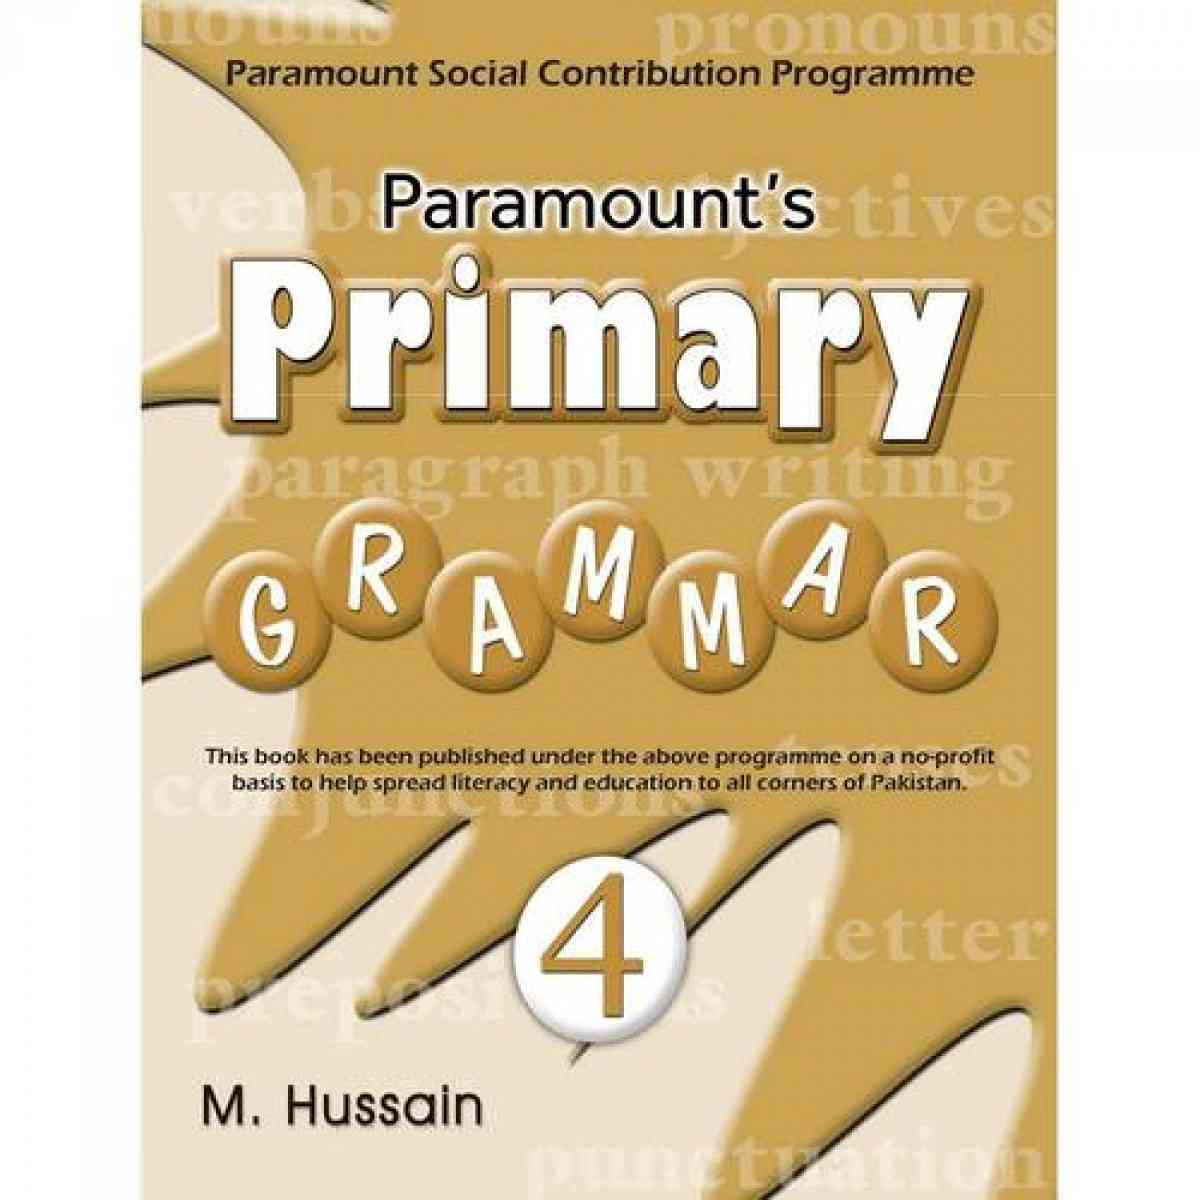 ParamountS Primary Grammar: Paramount Social Contribution Programme Book 4